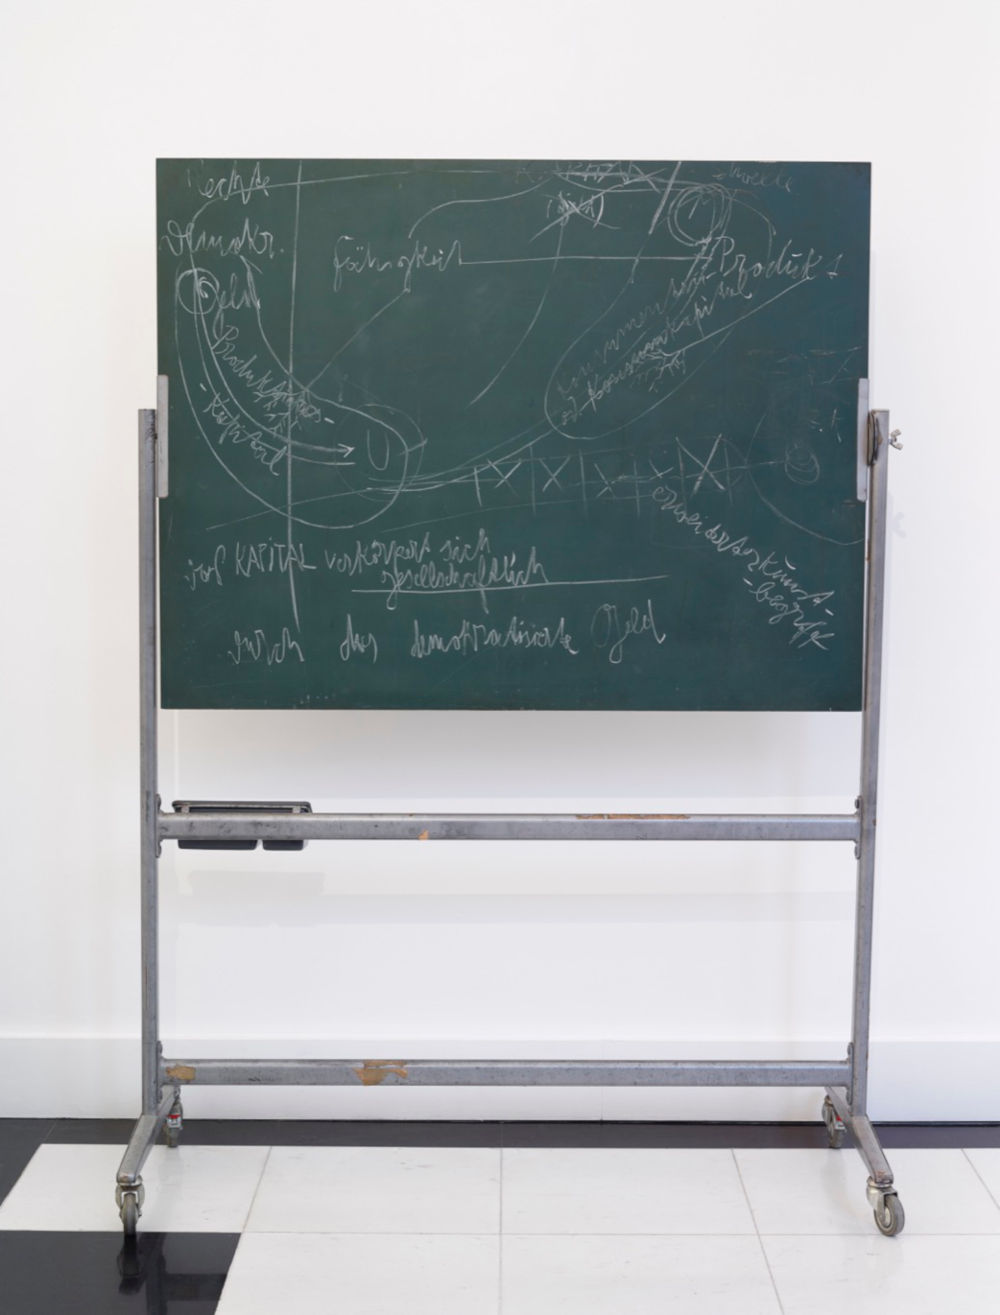 Joseph Beuys, Okologie und Sozialismus (Ecology and Socialism), 1980. Chalk, blackboard, tray and metal stand. Overall: 189.9 x 138.4 x 61 cm (74.76 x 54.49 x 24.02 in) Blackboard: 99.7 x 128.9 cm (39.25 x 50.75 in). Galerie Thaddaeus Ropac © 2019 Estate of Joseph Beuys/DACS 2019. Photo: Tom Carter